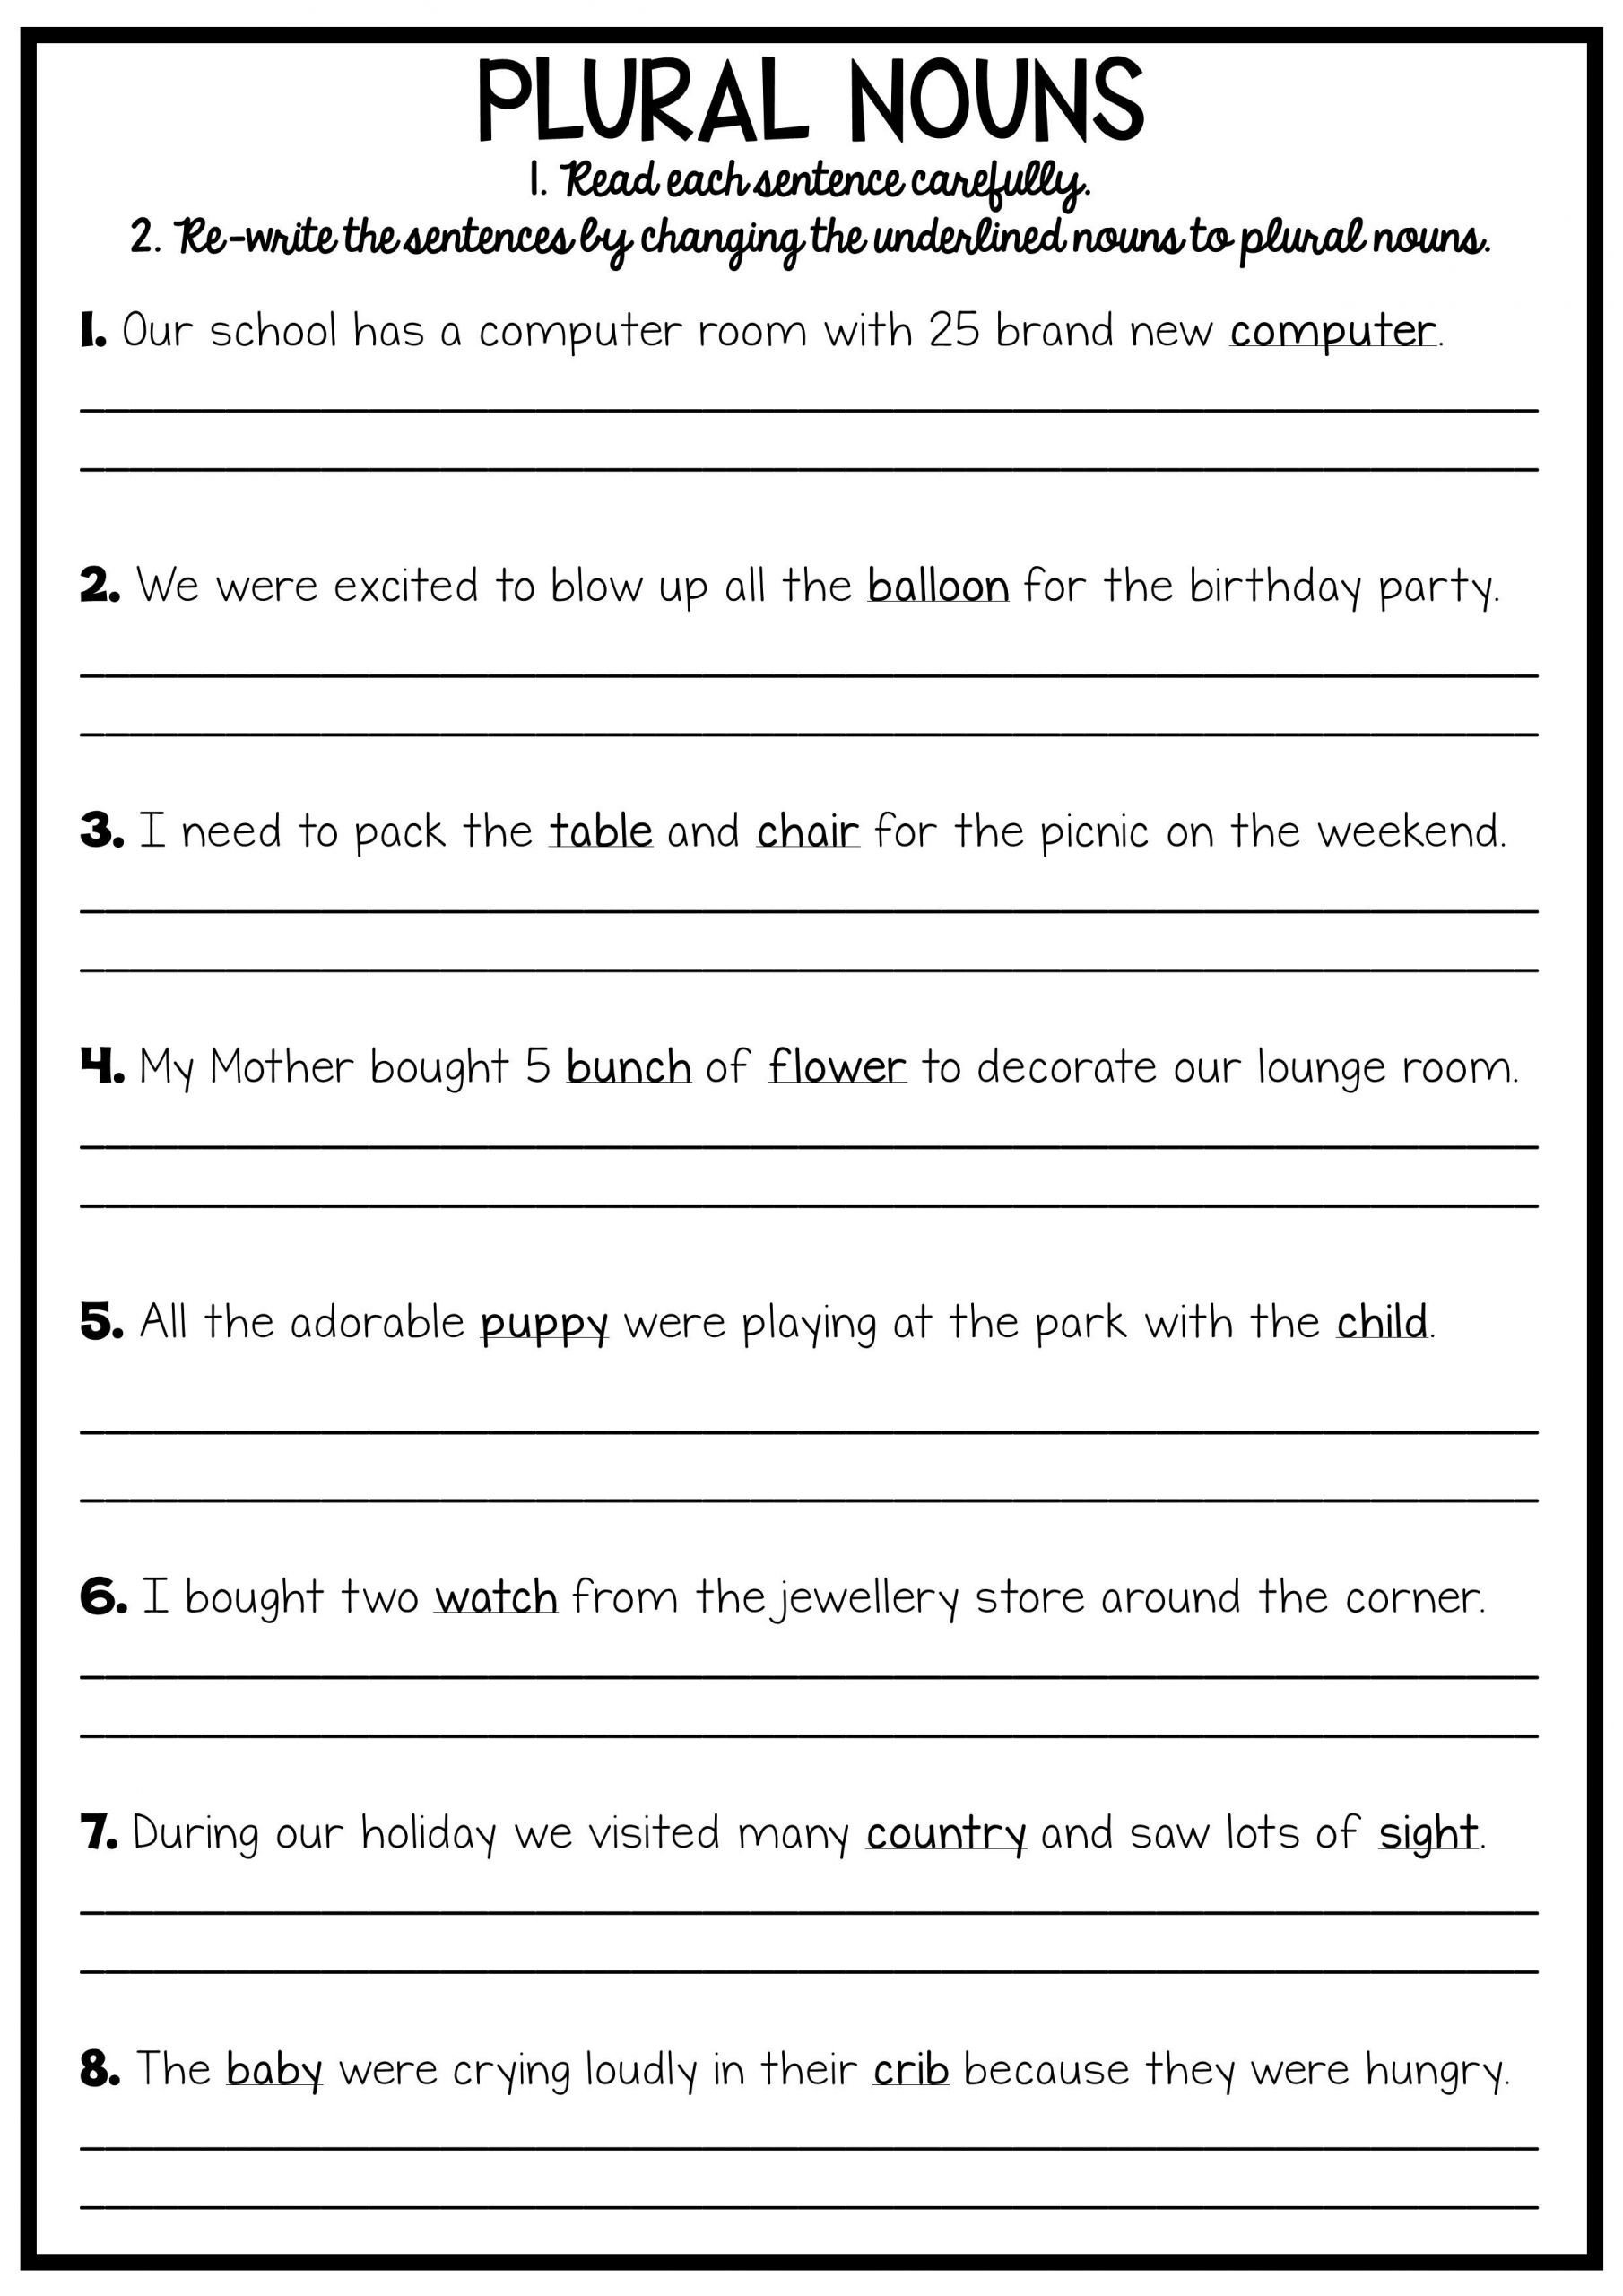 9th Grade Grammar Worksheets Worksheet Worksheet Free Printable English Grammar